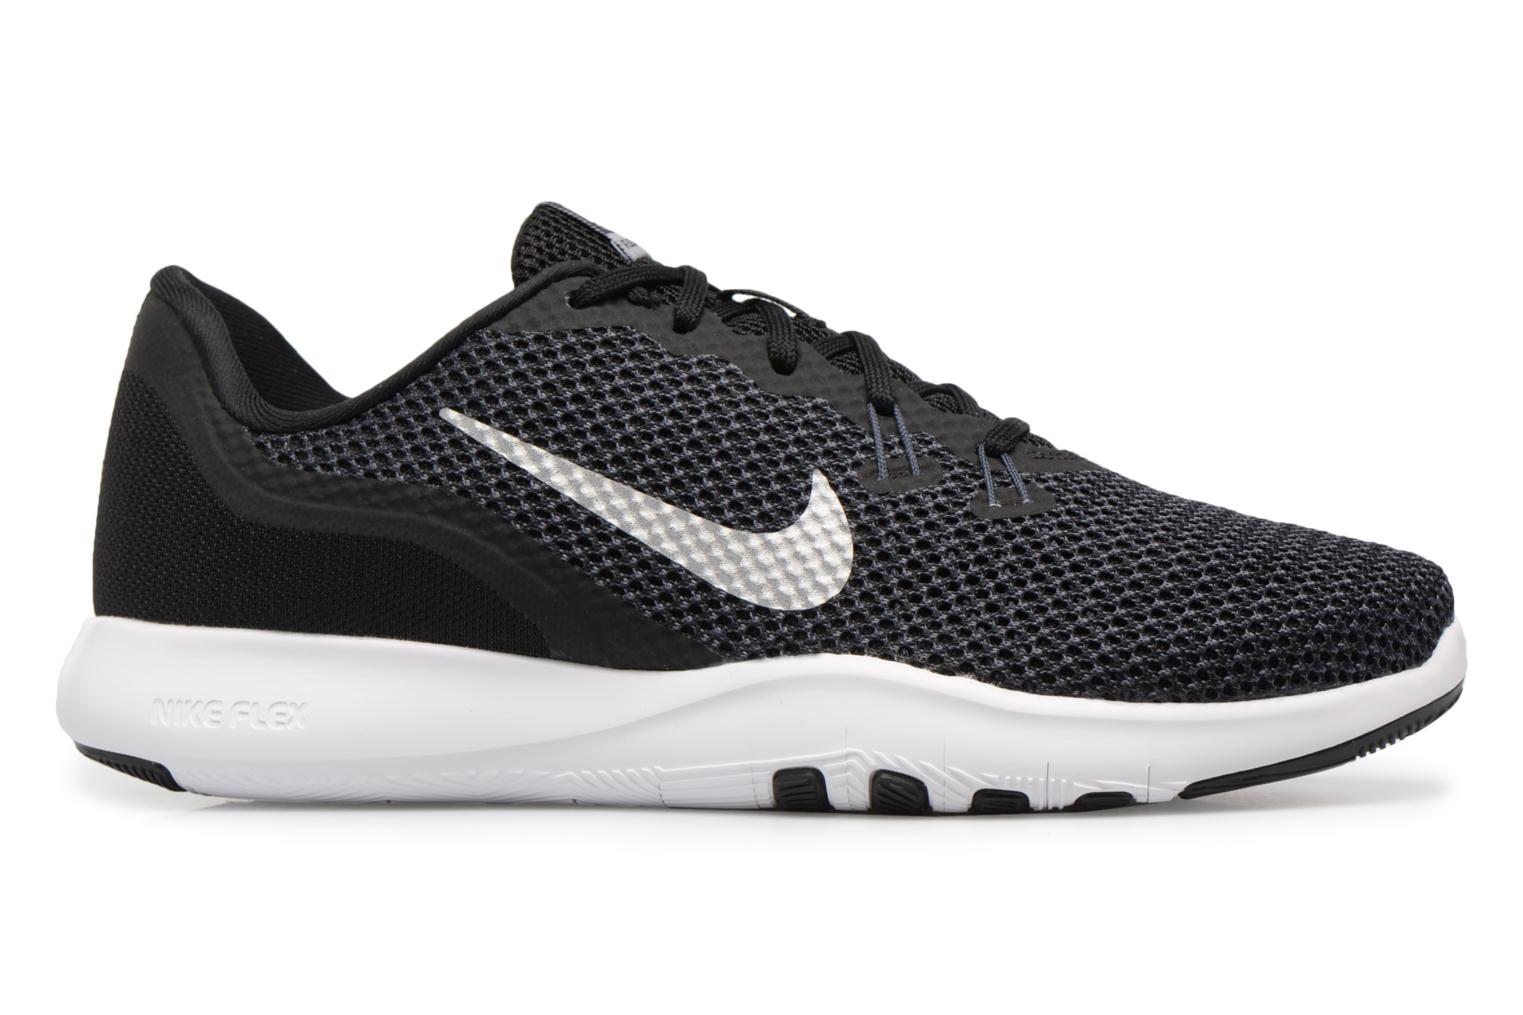 W Nike Flex Trainer 7 Black/Metallic Silver-Anthracite-White